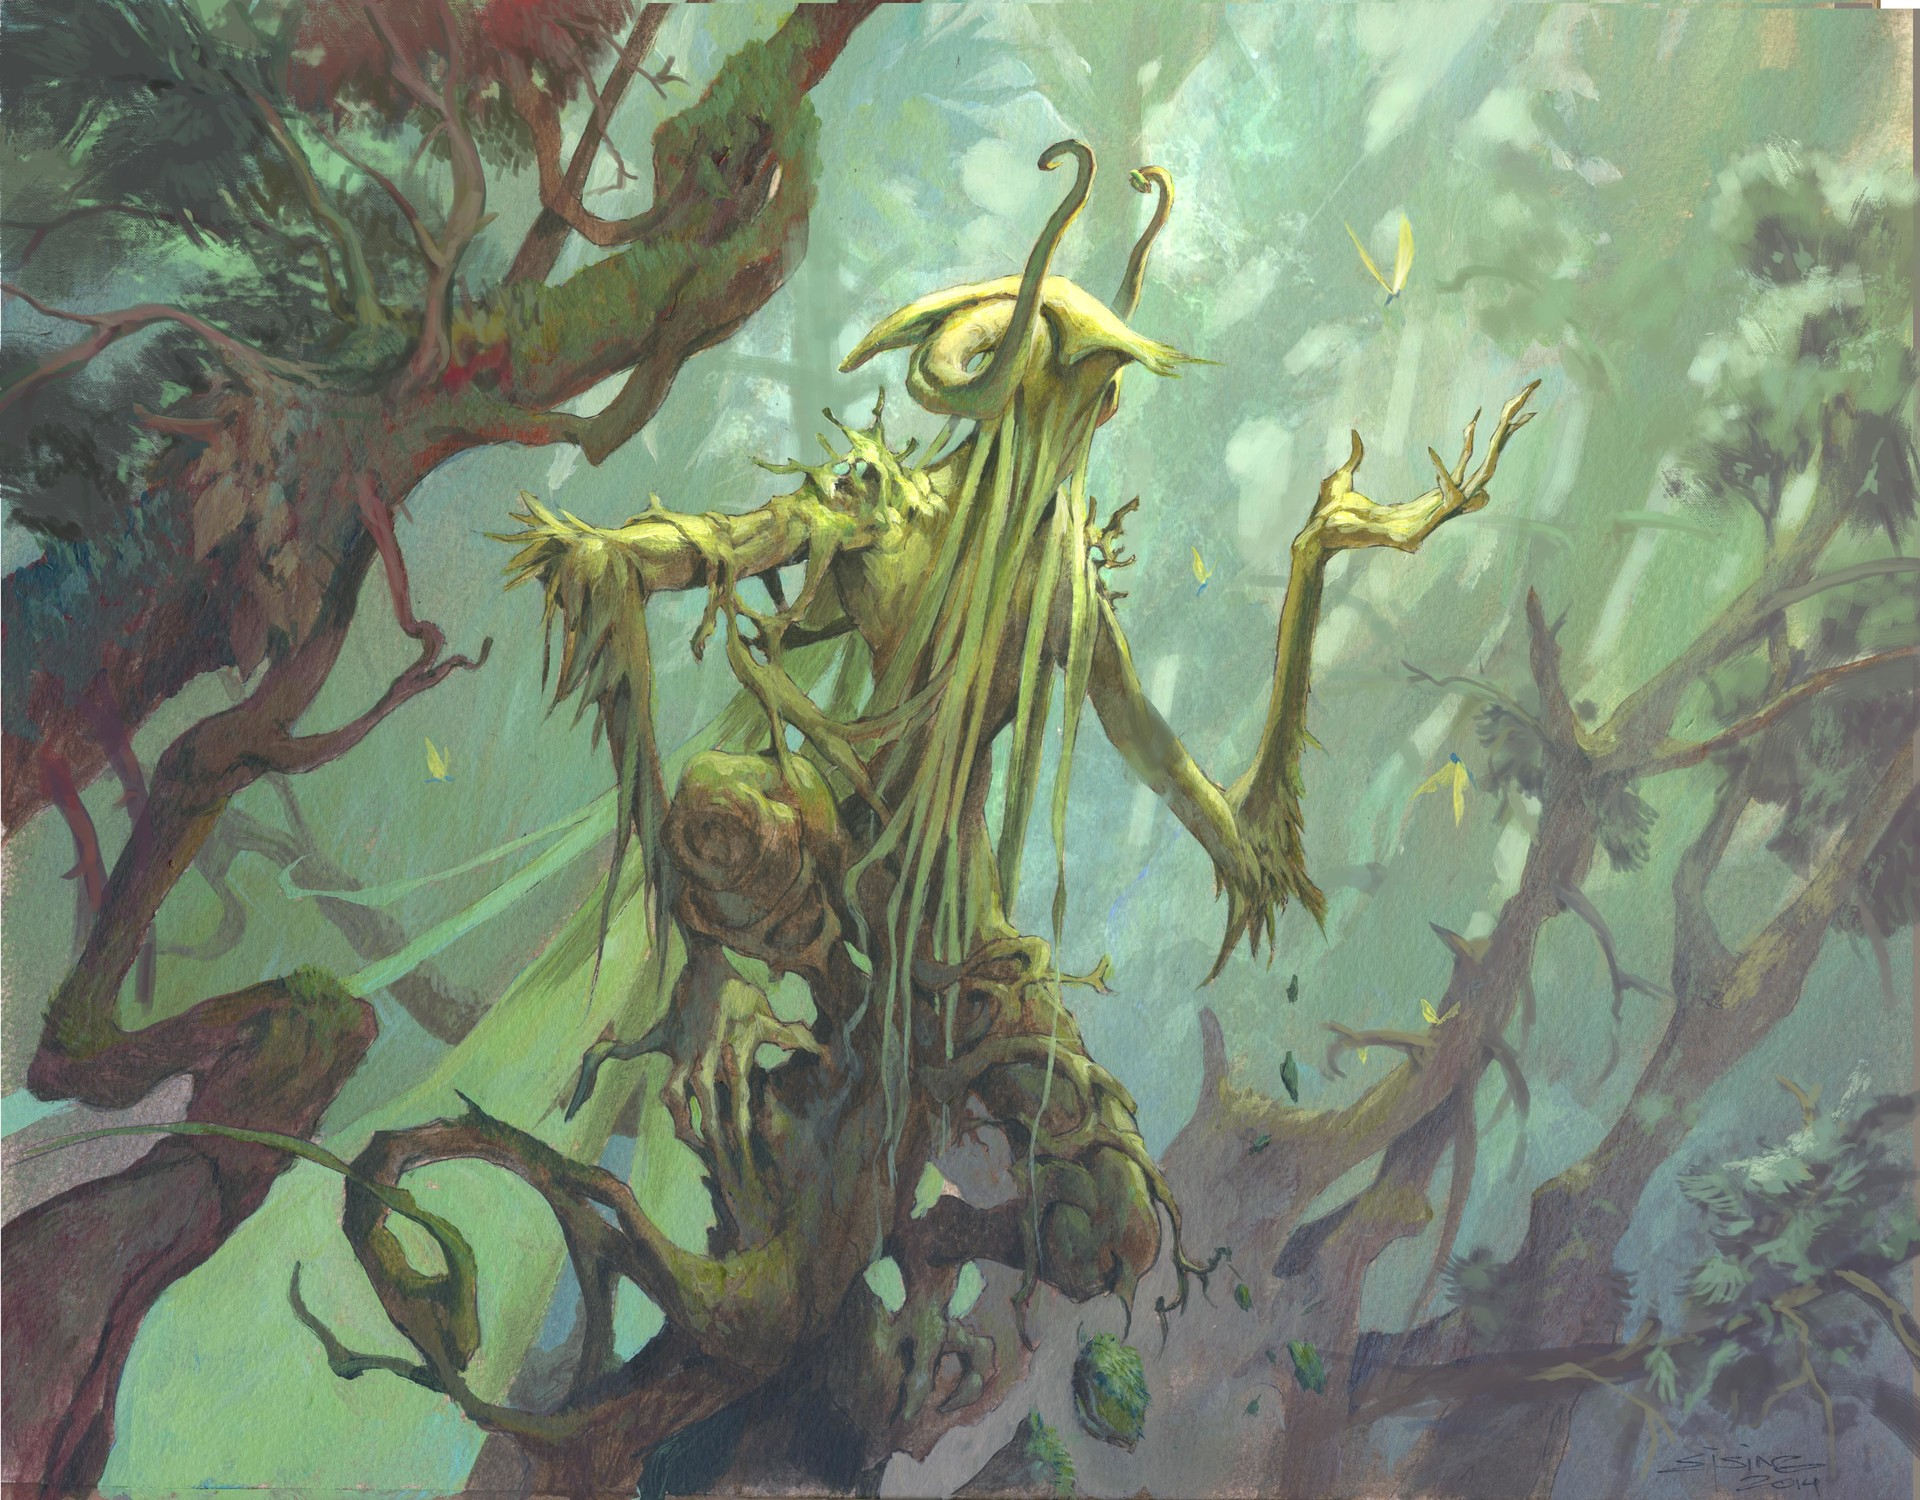 Jesper Ejsing Acrylic Painting Glade watcher magic the Gathering